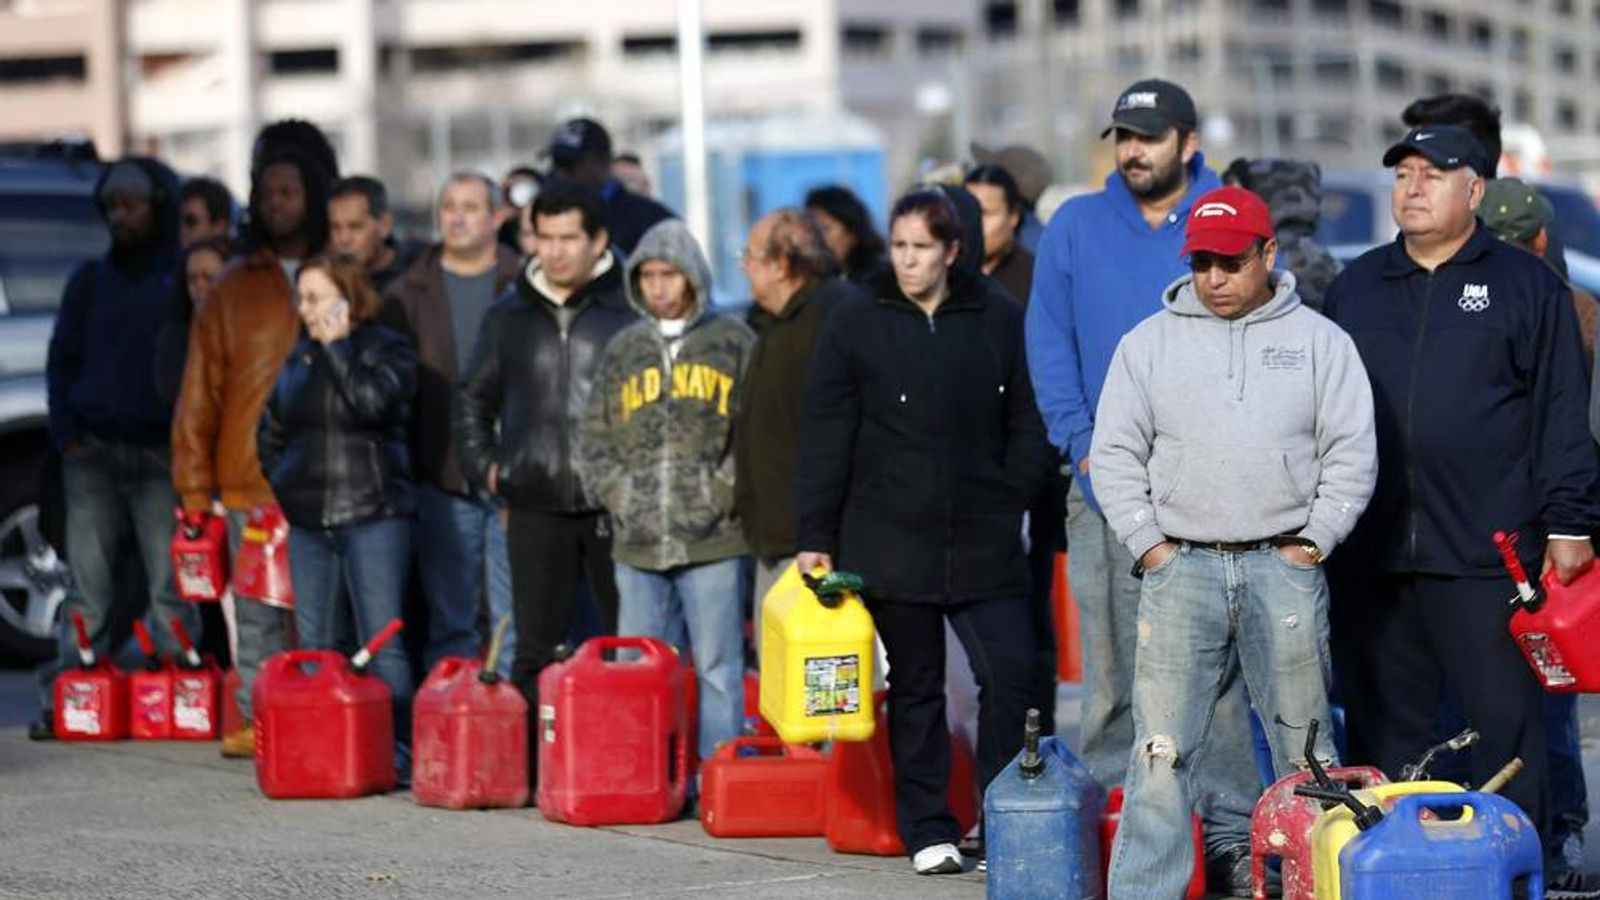 People line up at a gas station after Hurricane Sandy